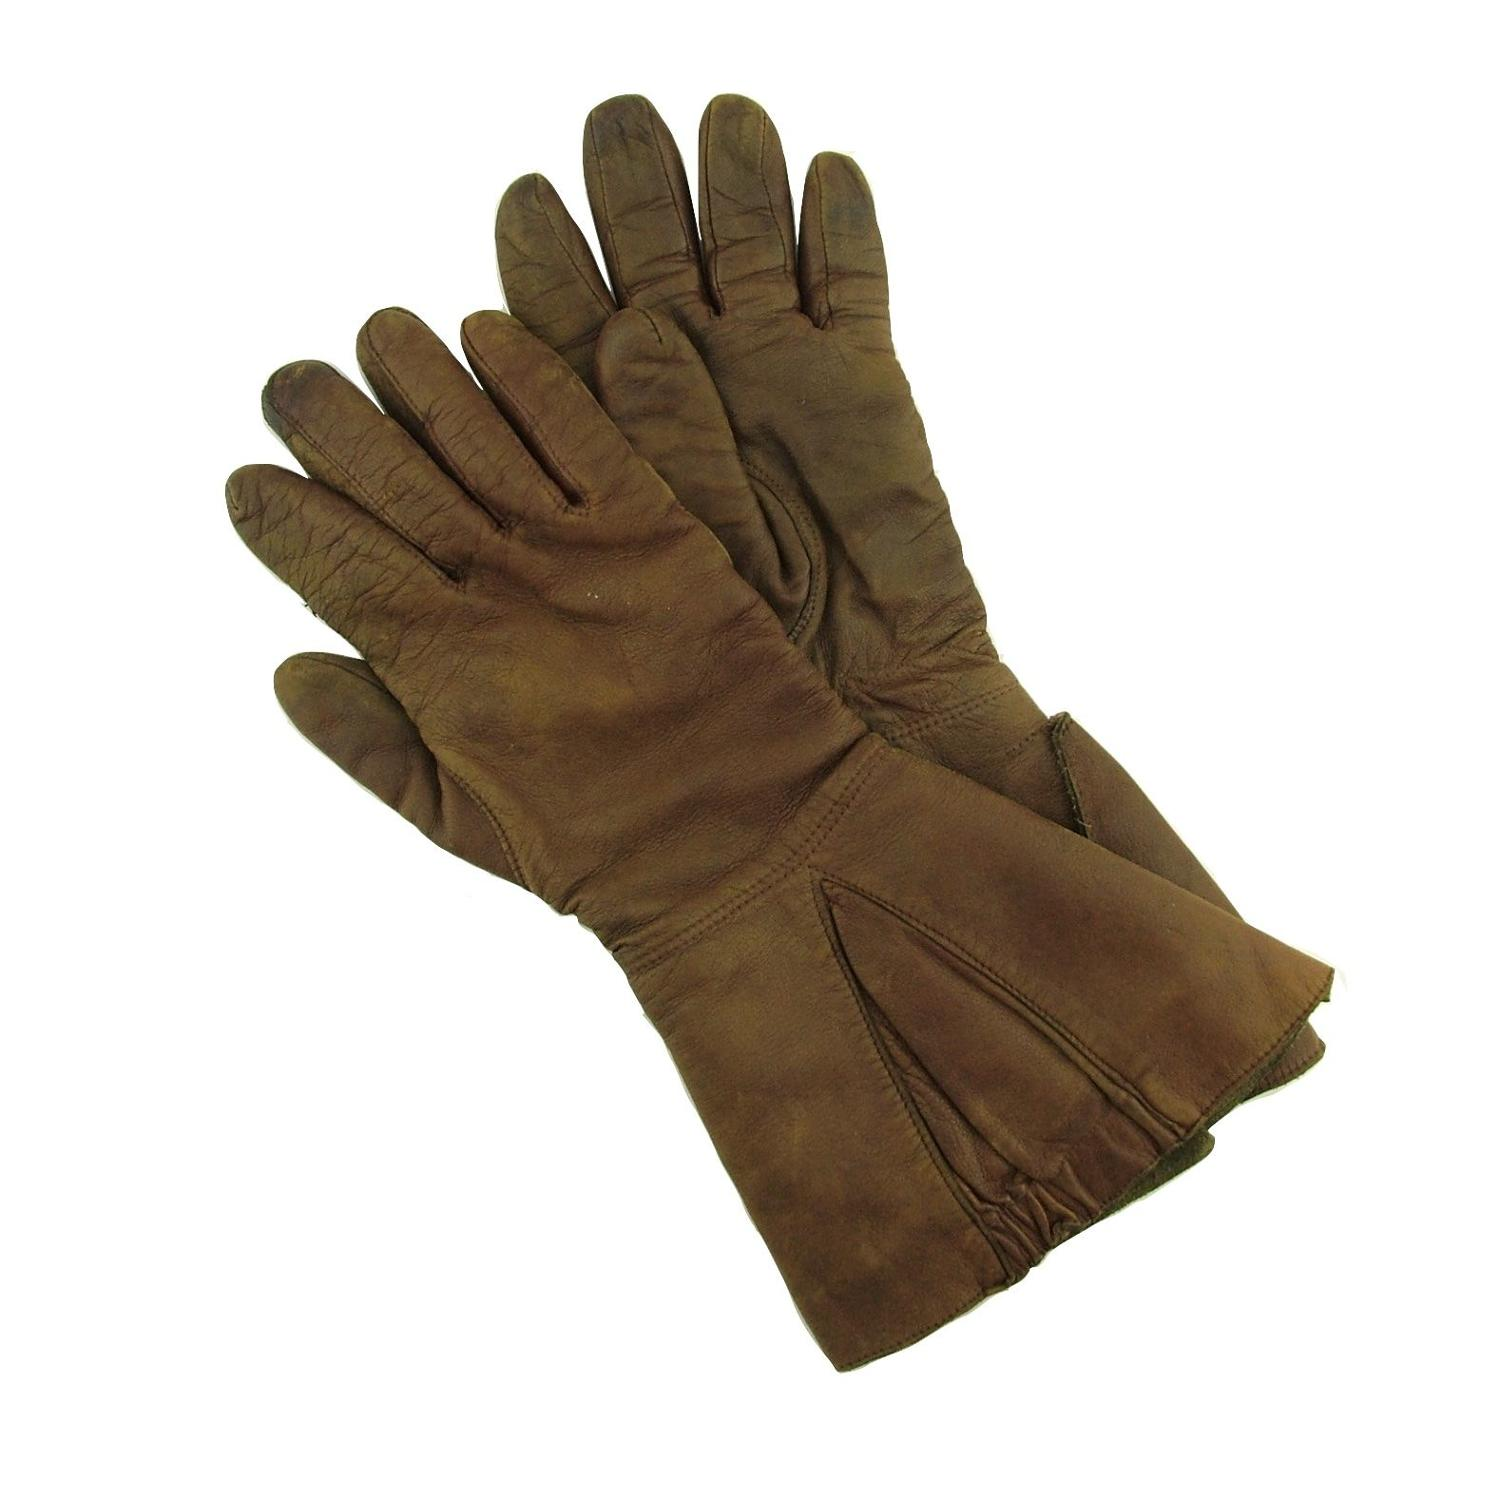 RAF type H flying gauntlets